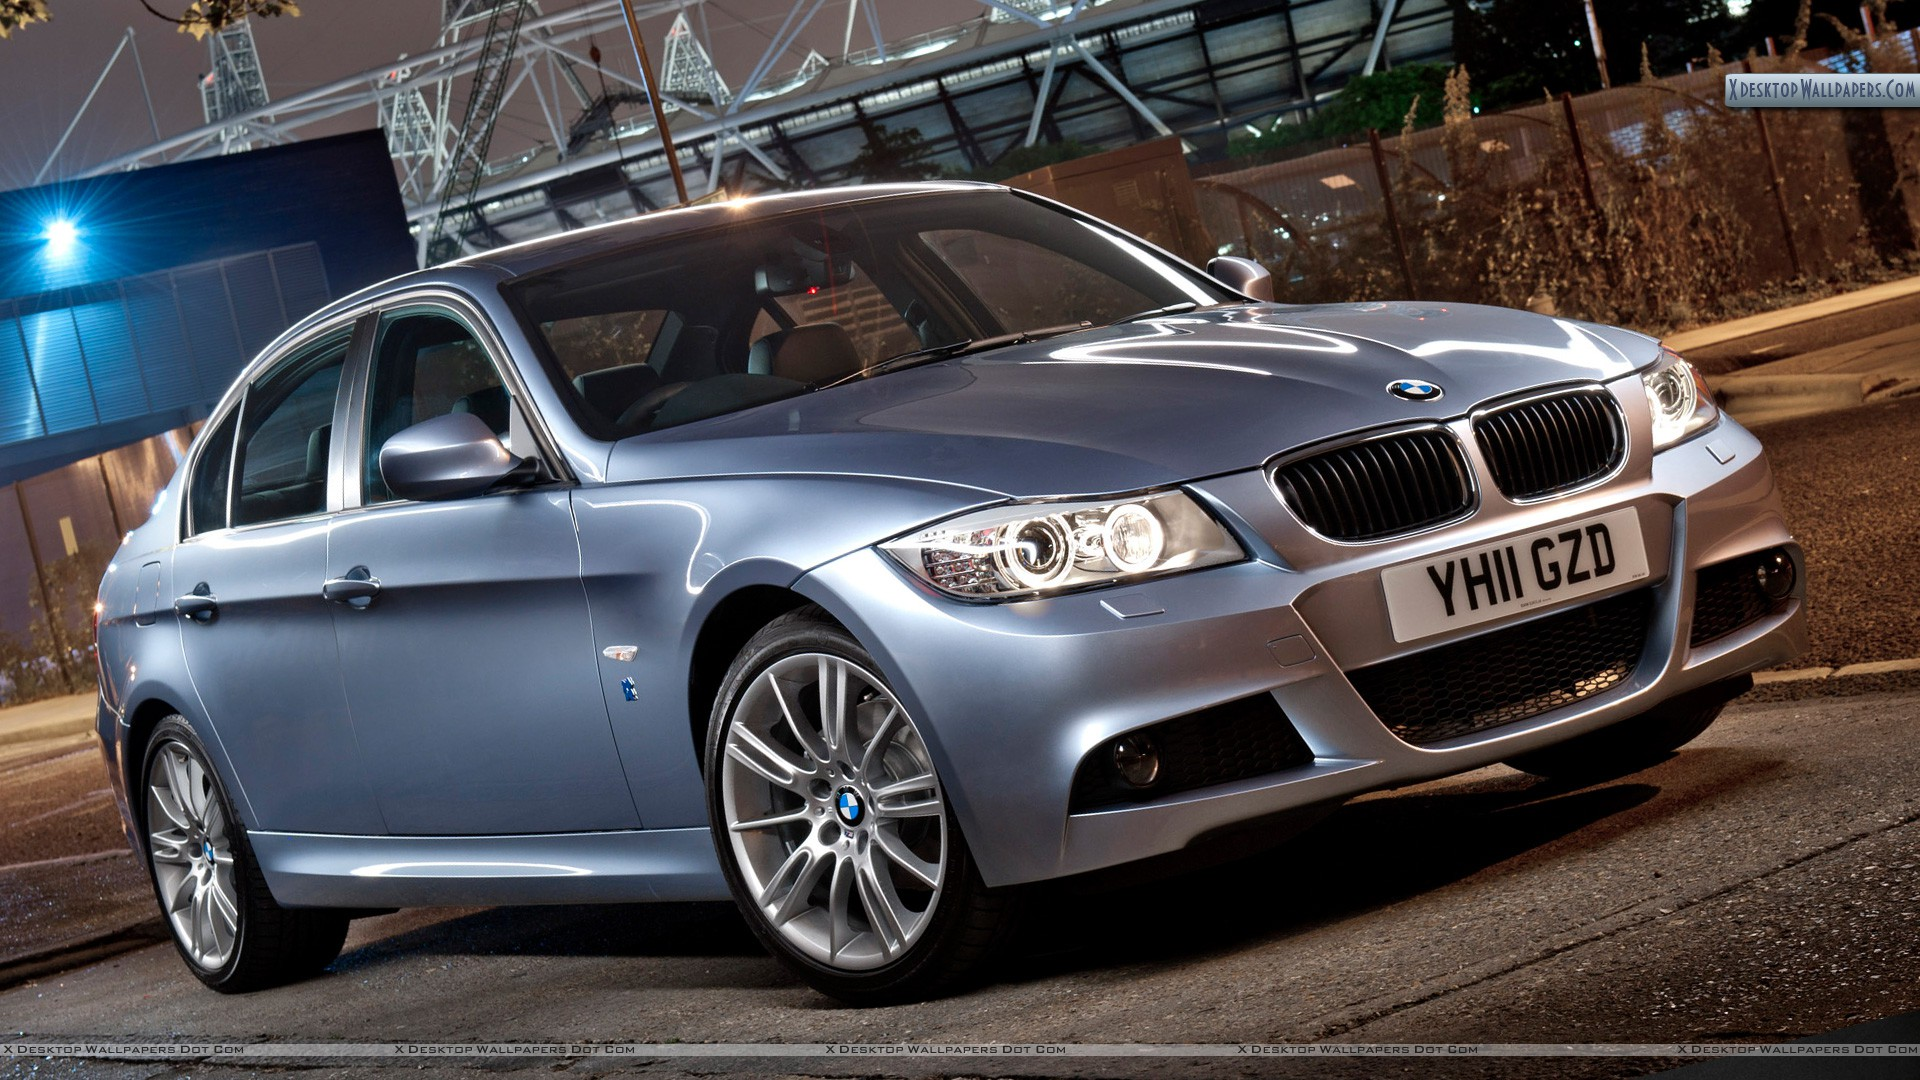 2012 Bmw 3 Series Performance Edition Side Front In Silver Wallpaper